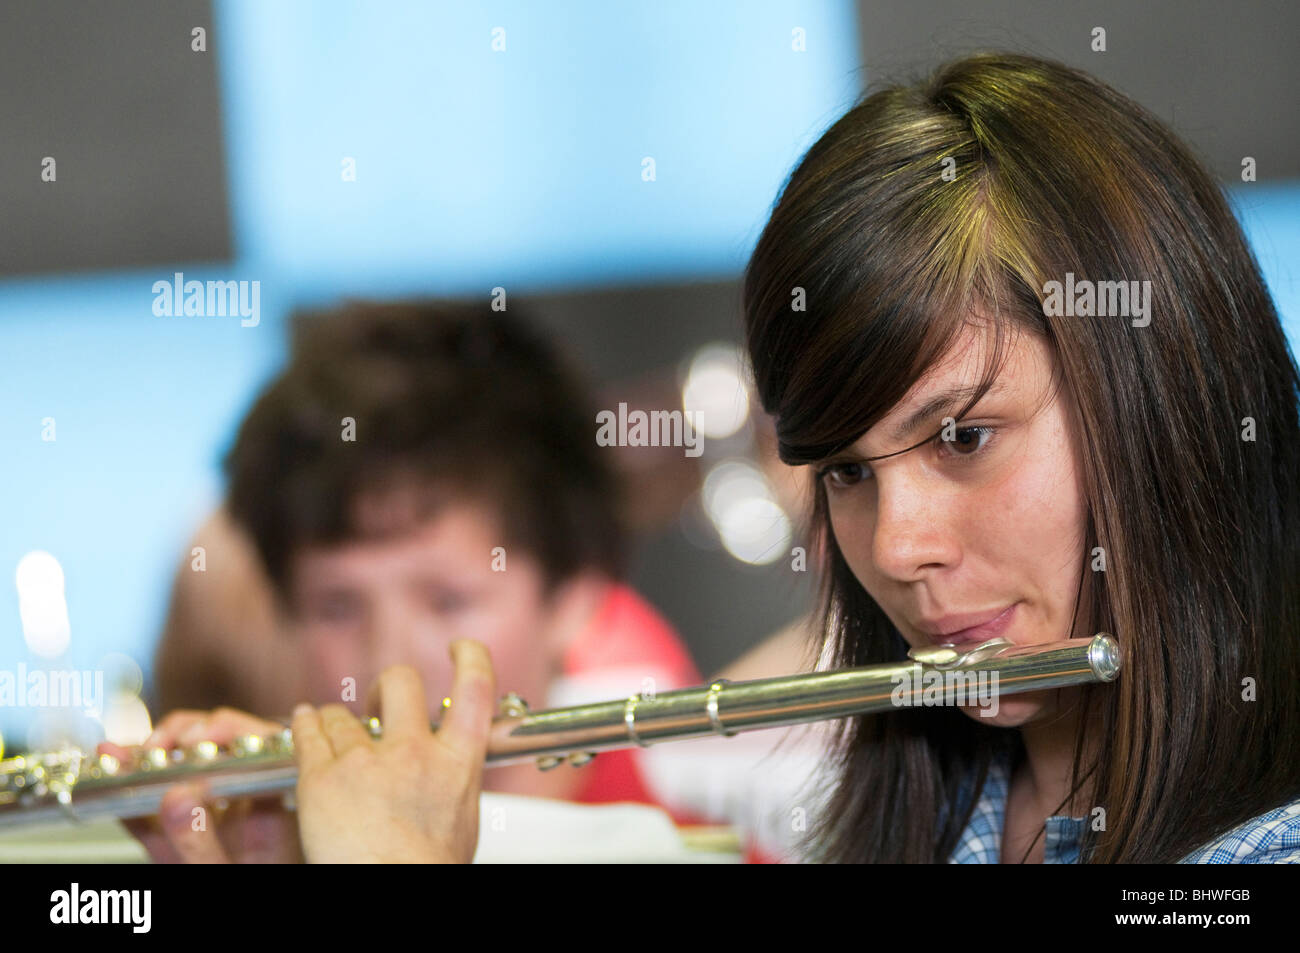 A young girl playing flute in a high school orchestra - Stock Image